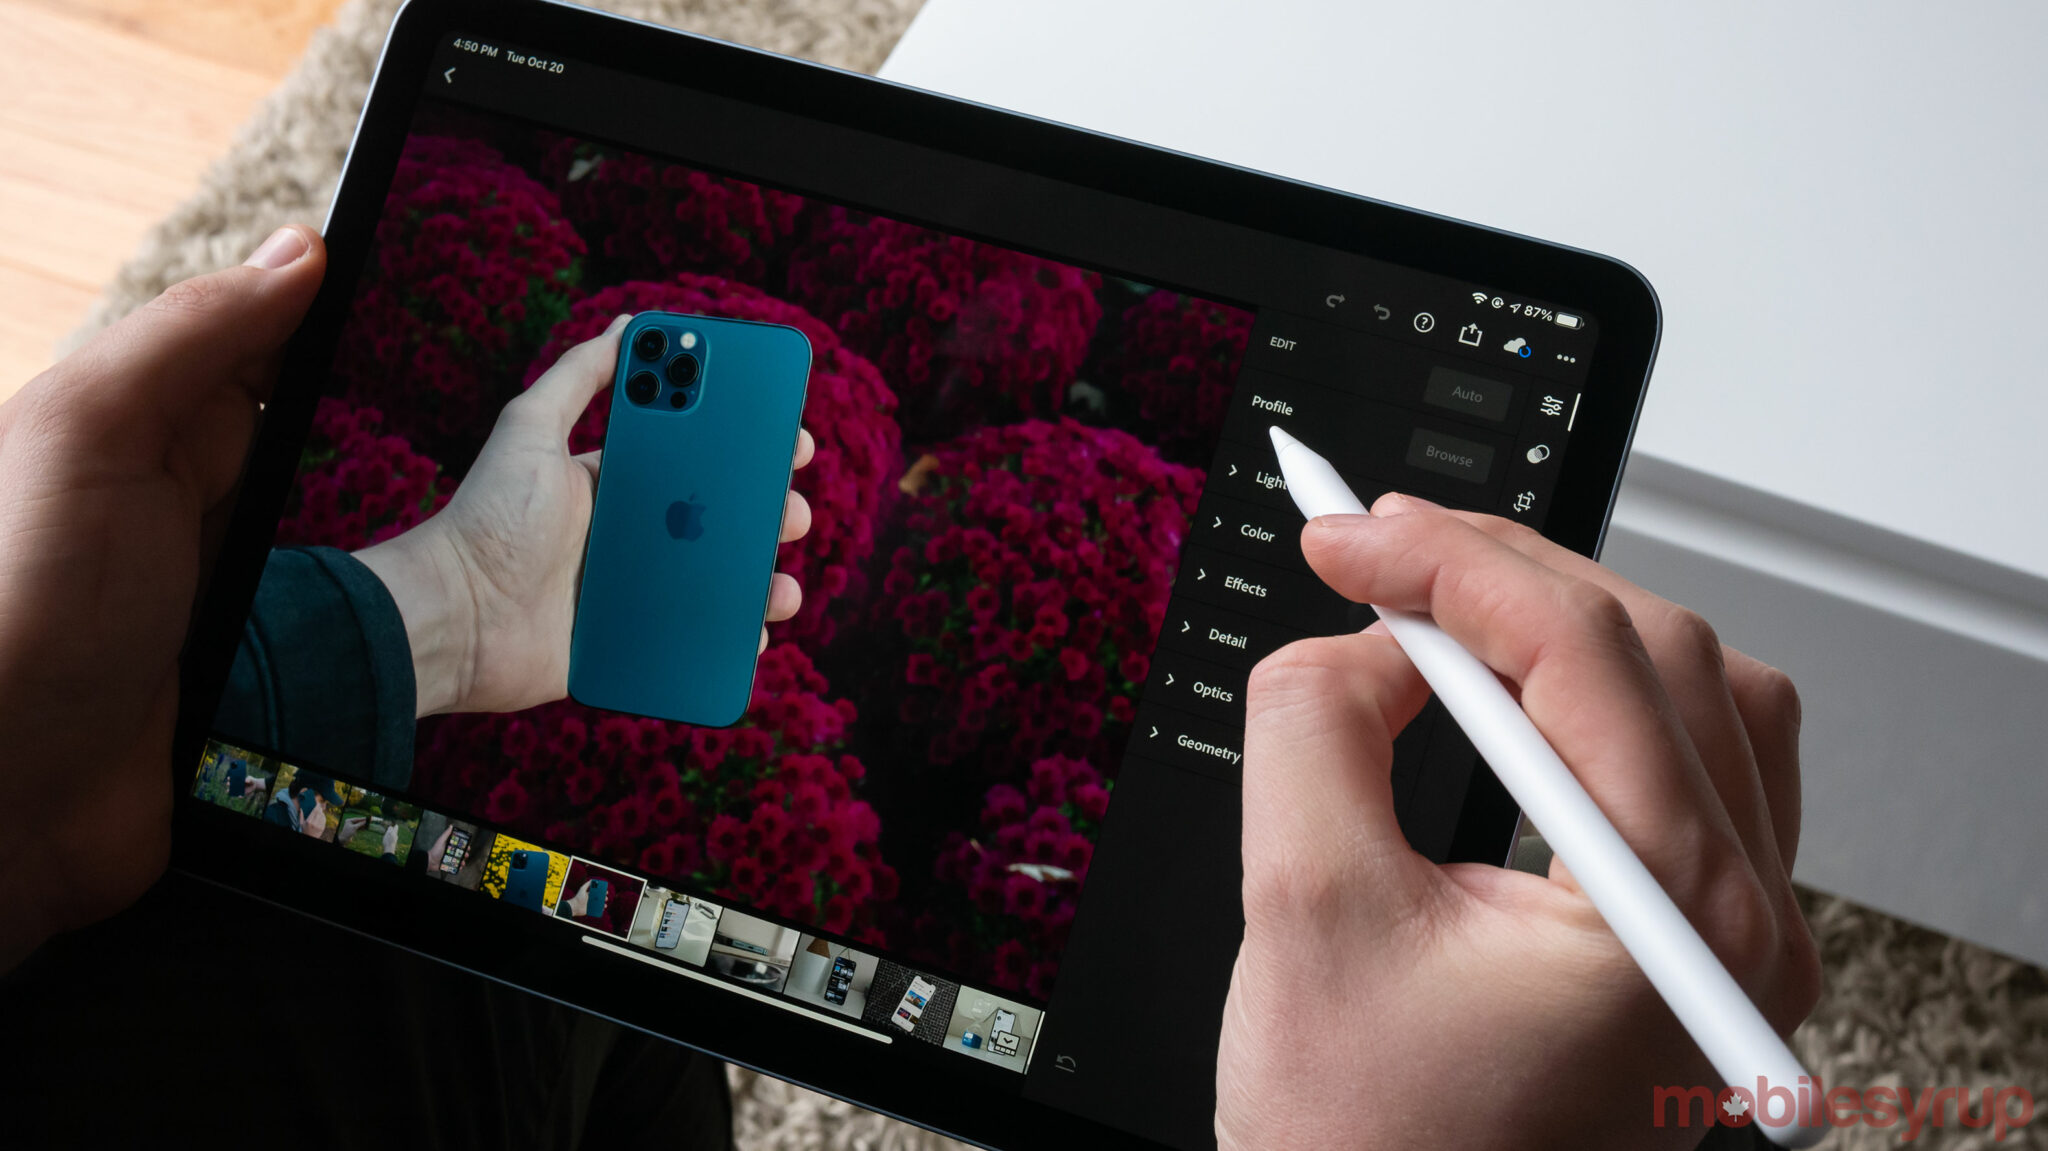 Apple's iPads continue to lead worldwide tablet market in Q1 2021